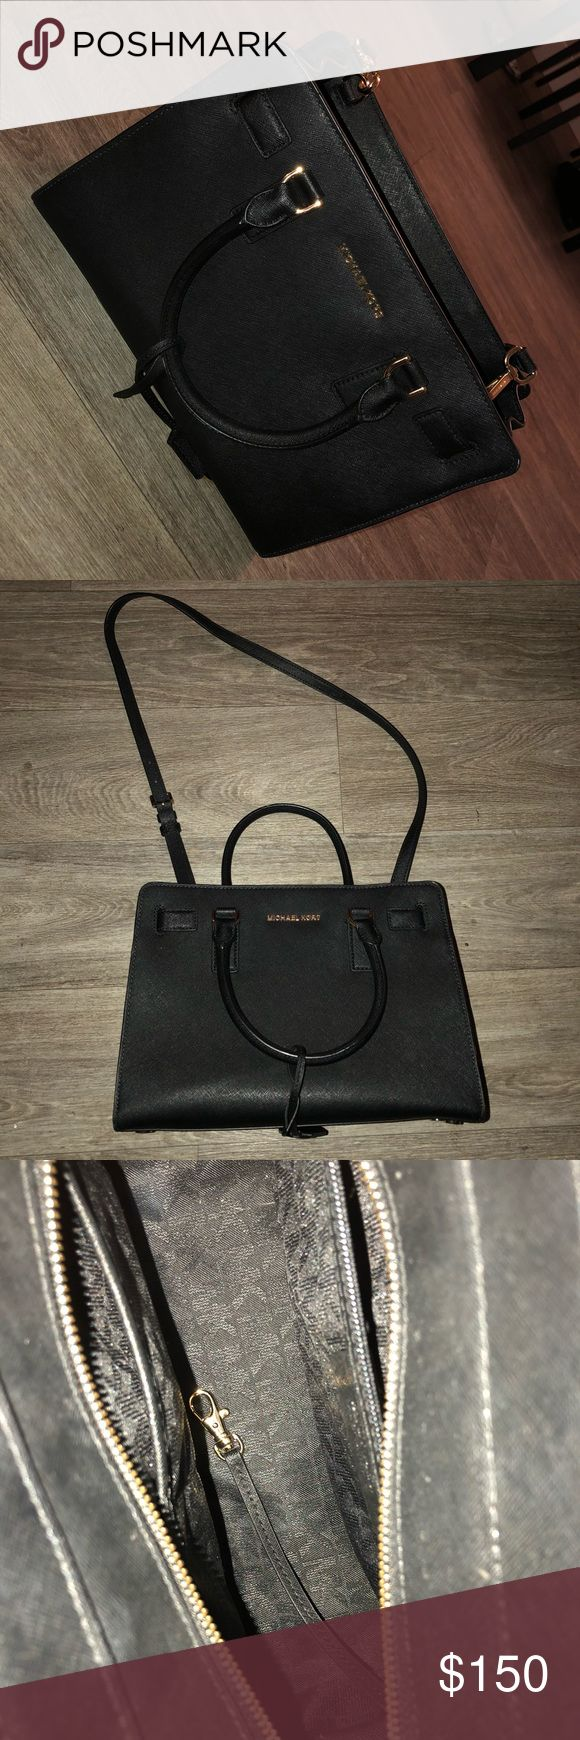 Black authentic Michael Kors purse Used for a day before realizing I like the smaller crossbody size. Been in the closet since. Black and gold. Purchased from Macys June 2017. Michael Kors Bags Satchels